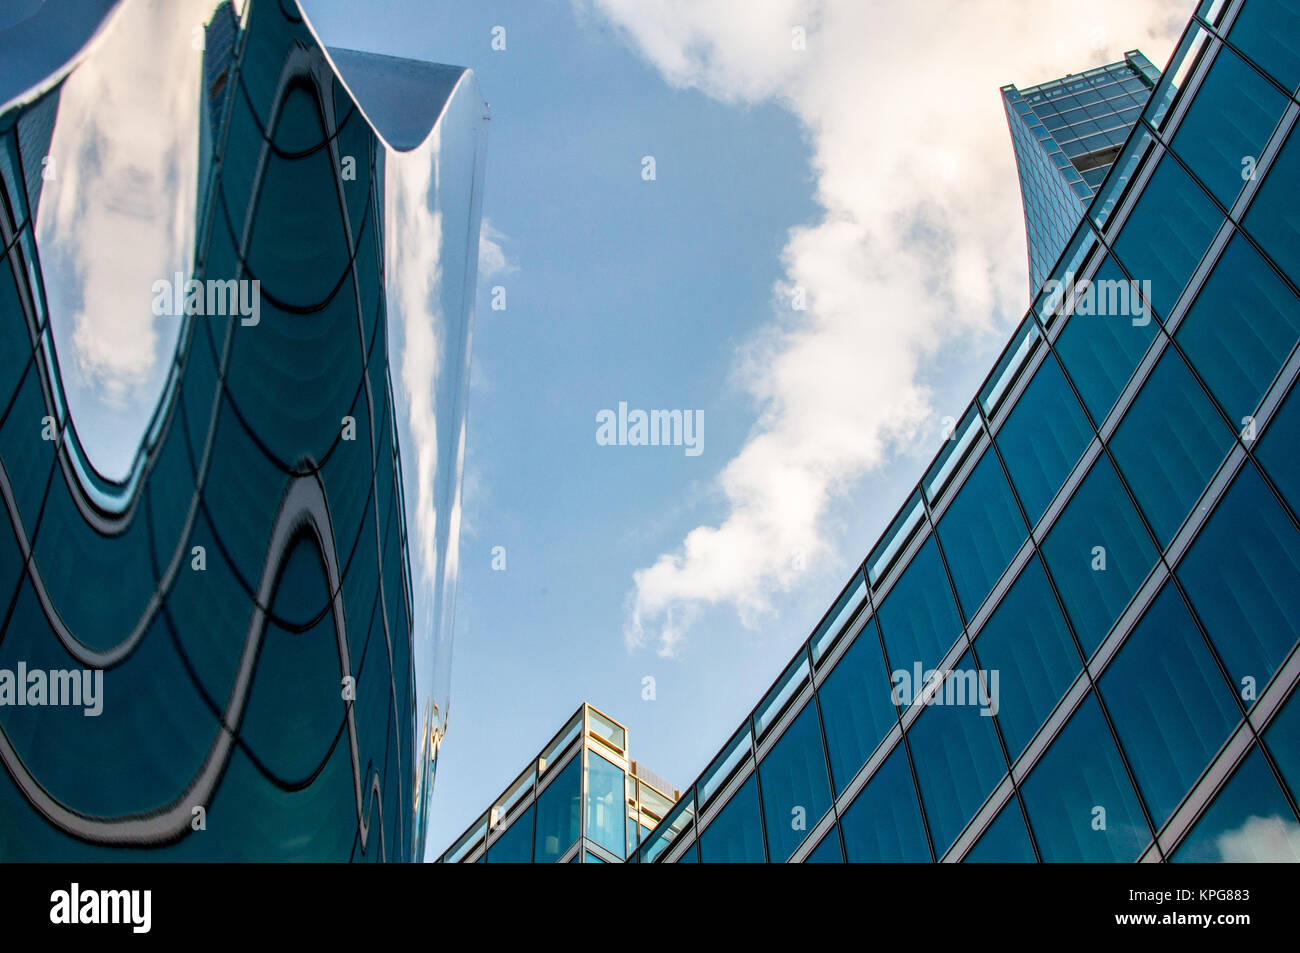 Modern skyscraper reflected on a deforming surface - Stock Image